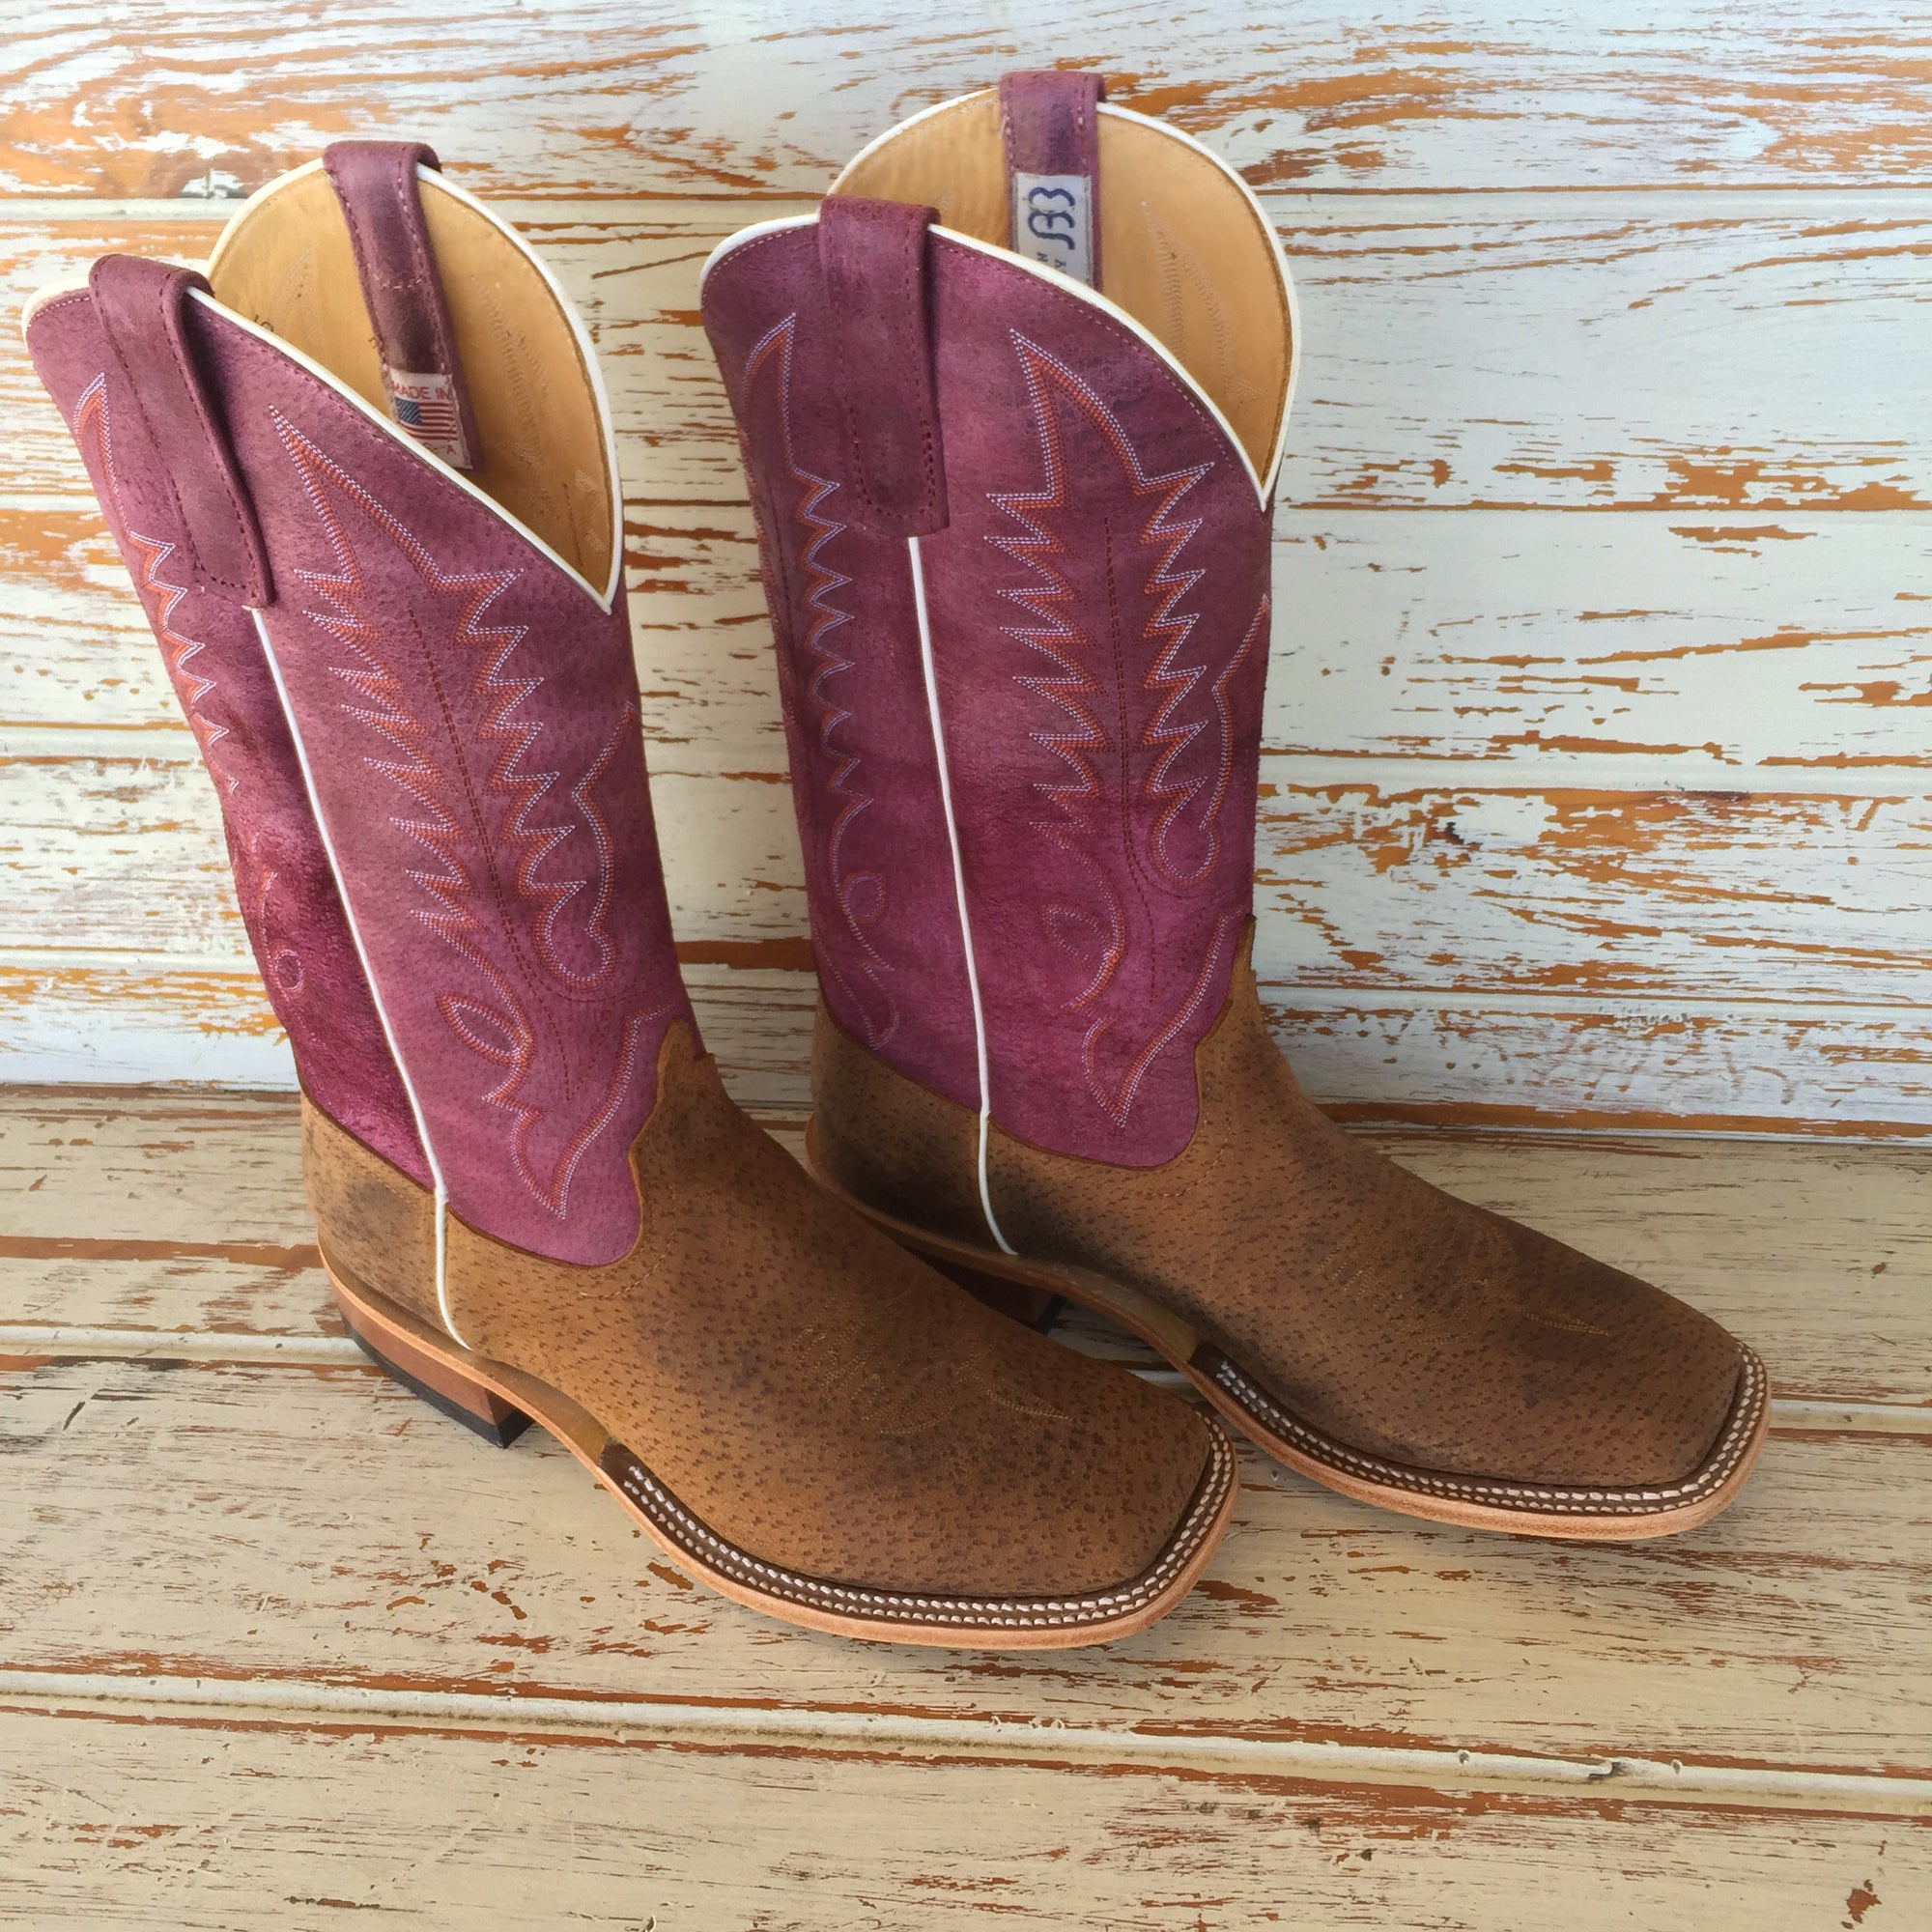 Anderson Bean & Lazy J Boar and Kidskin Men's Boot